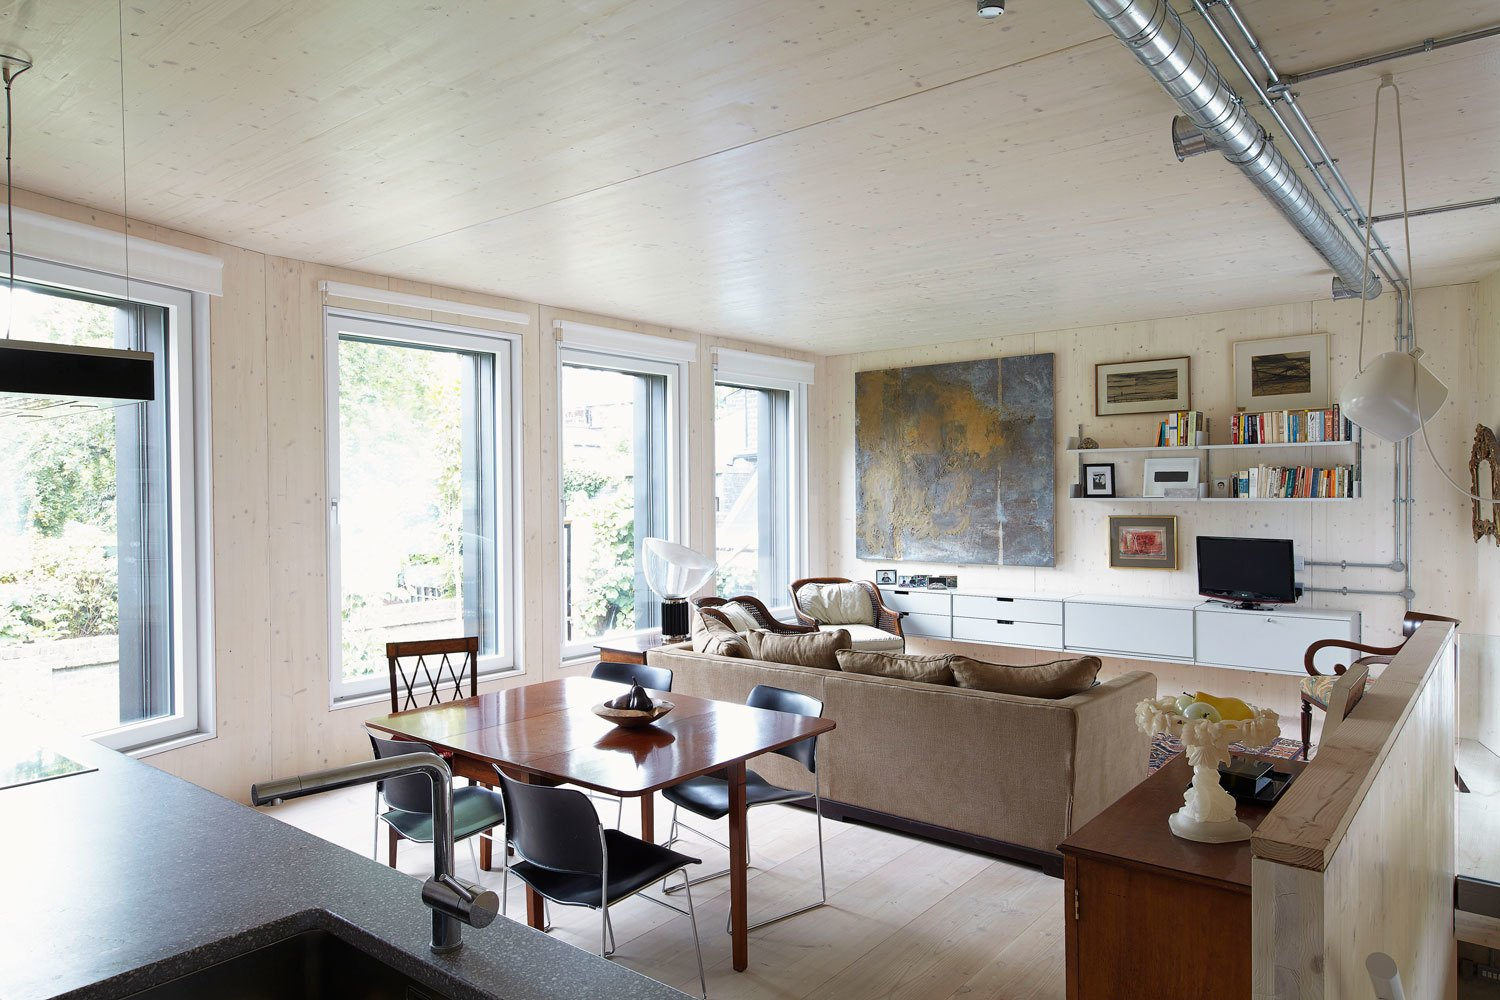 The approximately 1076-square-foot, two-bedroom dwelling was built by architect Bernard Tulkens for his parents-in-law. It is the fifth certified Passive House to be completed in London. Natural Douglas fir flooring by Dinesen covers the living area, which contains shelving by Vitsoe.  15+ Passive Modern Home Ideas by Heather Corcoran from Small But Mighty Passive House in London